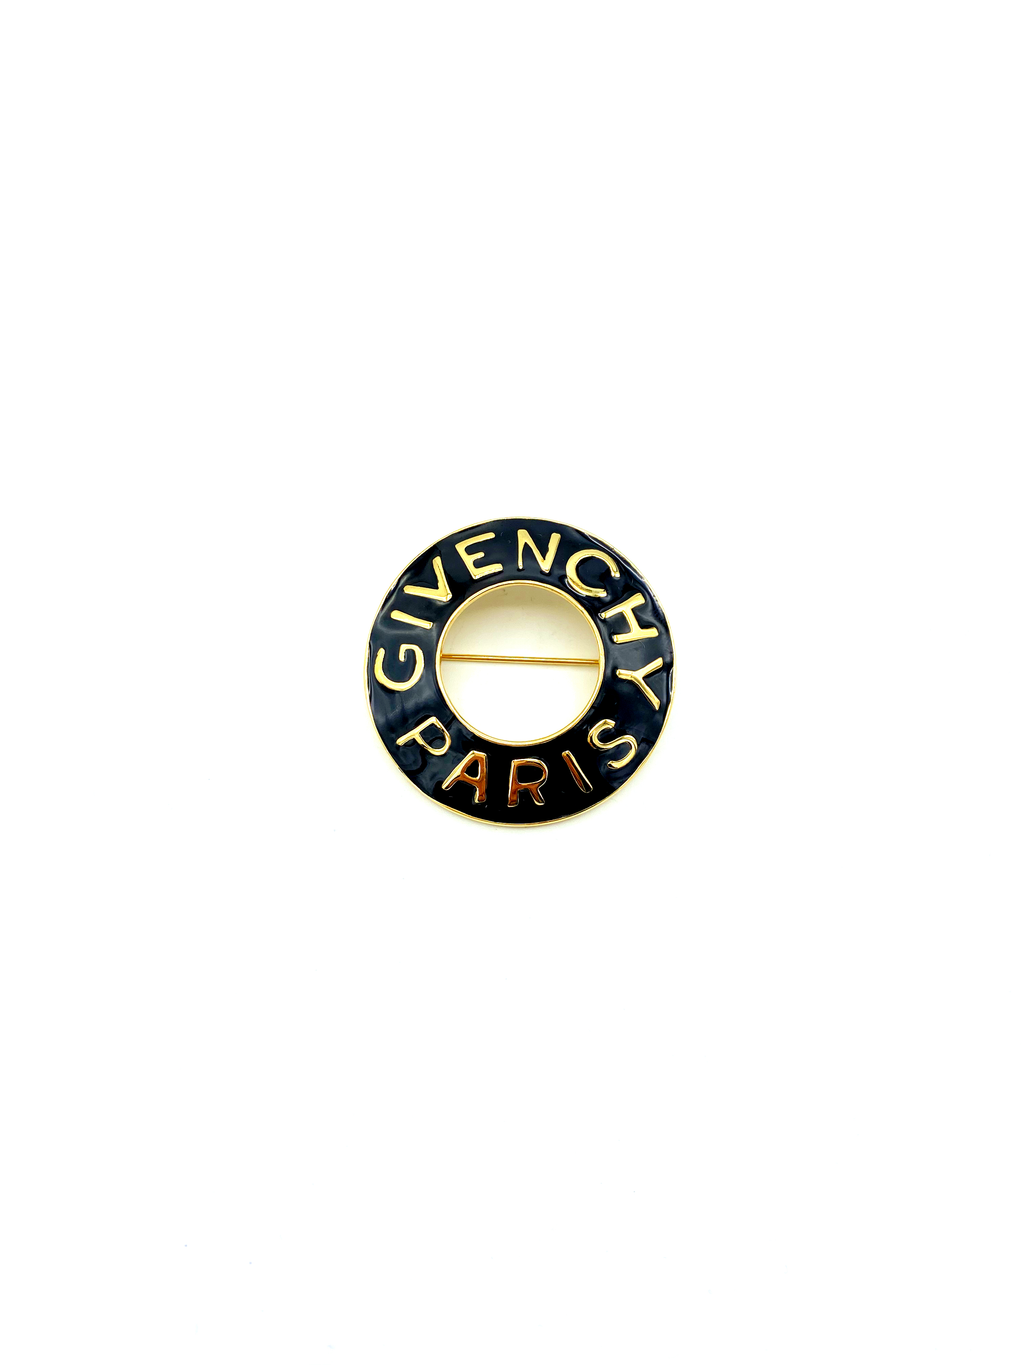 Classic Gold Givenchy Open Circle Black Enamel Logo Brooch Pin-Sustainable Fashion with Vintage Style-Trending Designer Fashion-24 Wishes